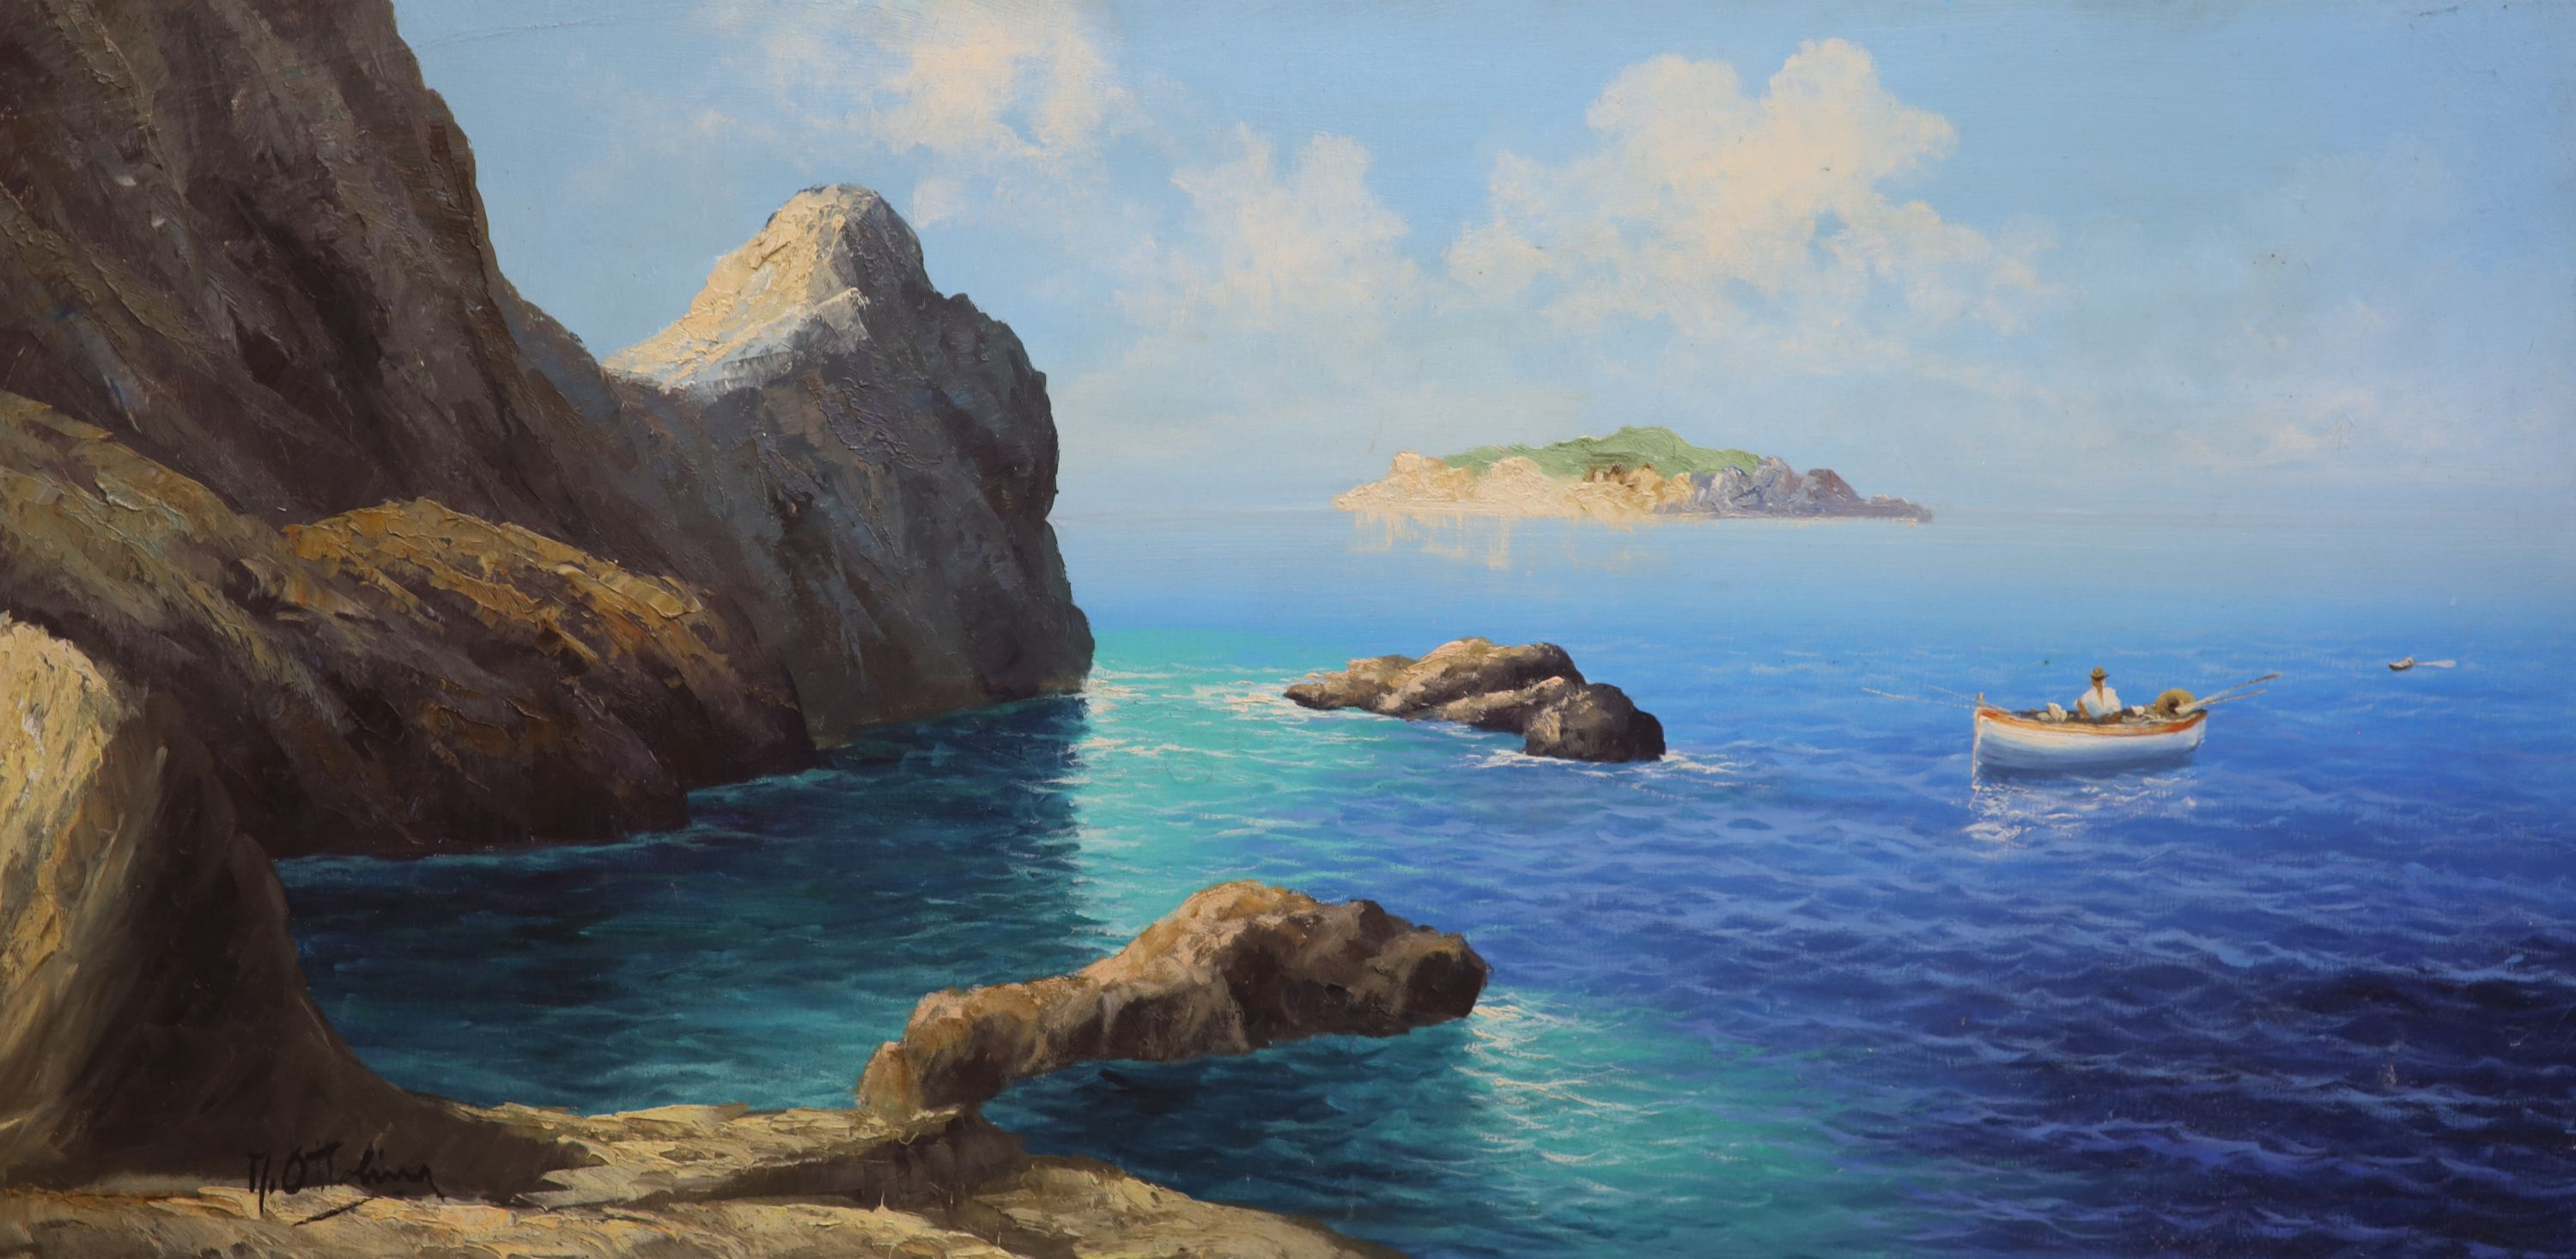 M. Ottolinaoil on canvasNeapolitan coastal scenesigned49 x 98cm - Image 3 of 4